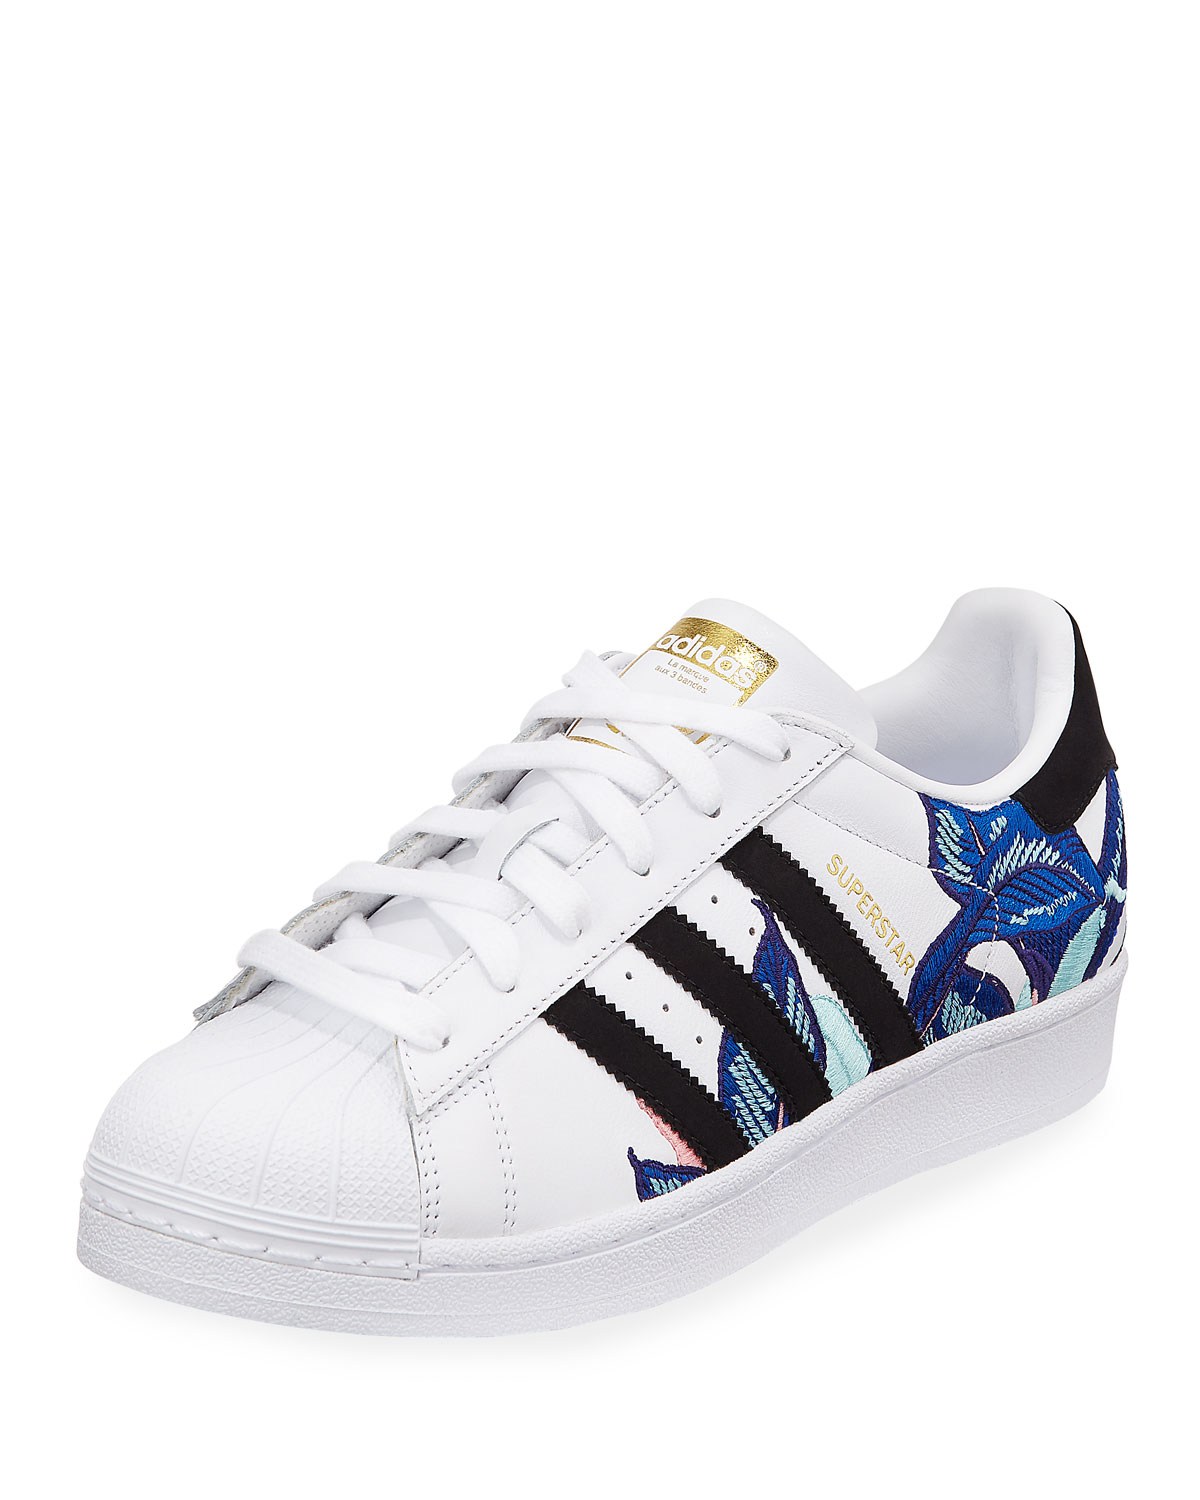 Adidas Superstar Embroidered Sneakers  d944a8e030